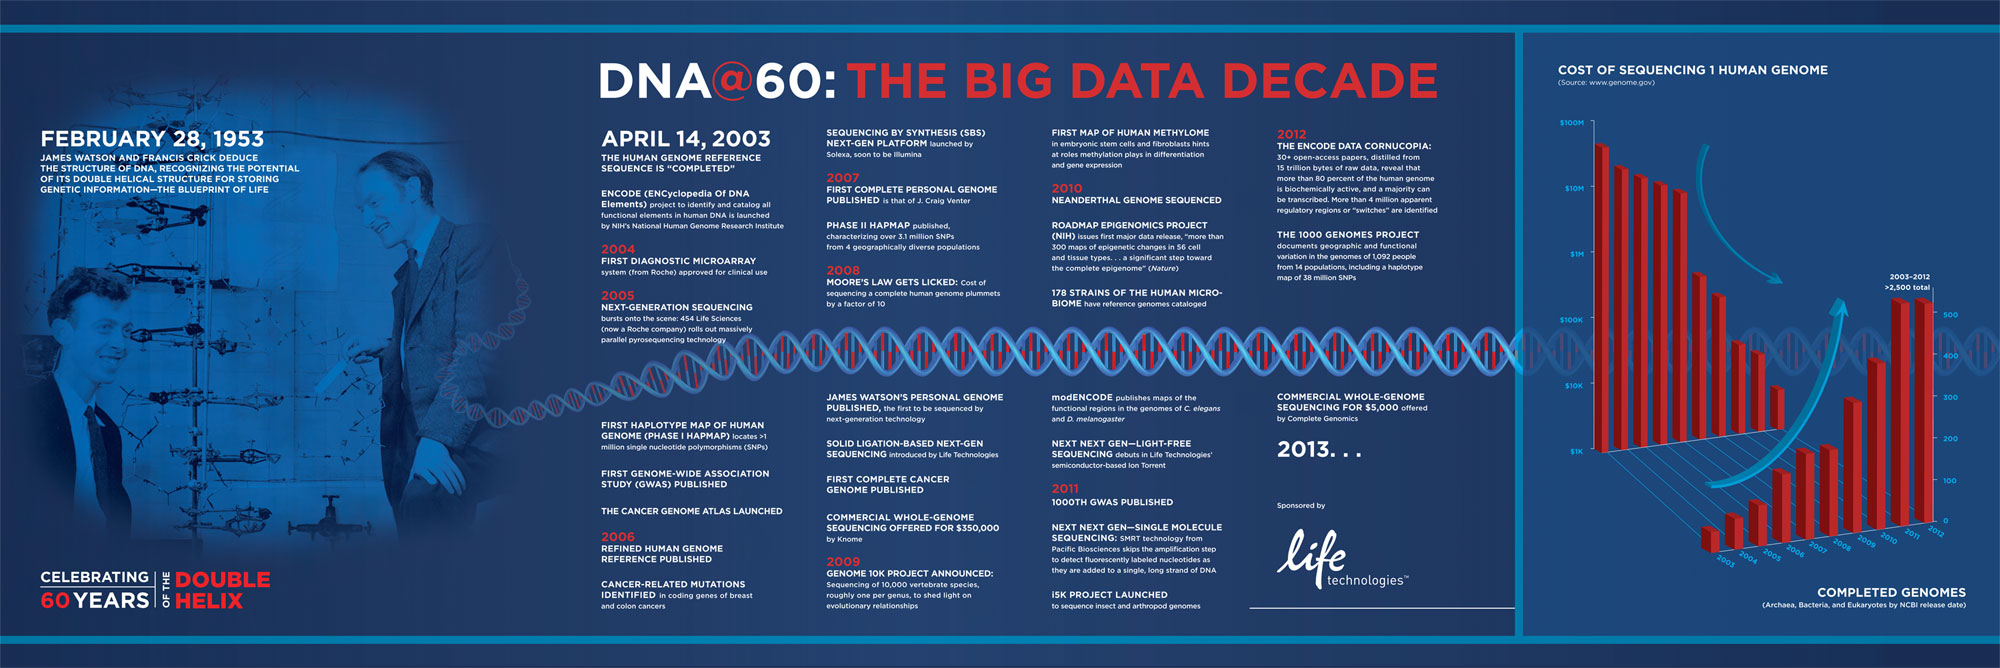 Dna60 the big data decade the scientist magazine view full size poster malvernweather Gallery